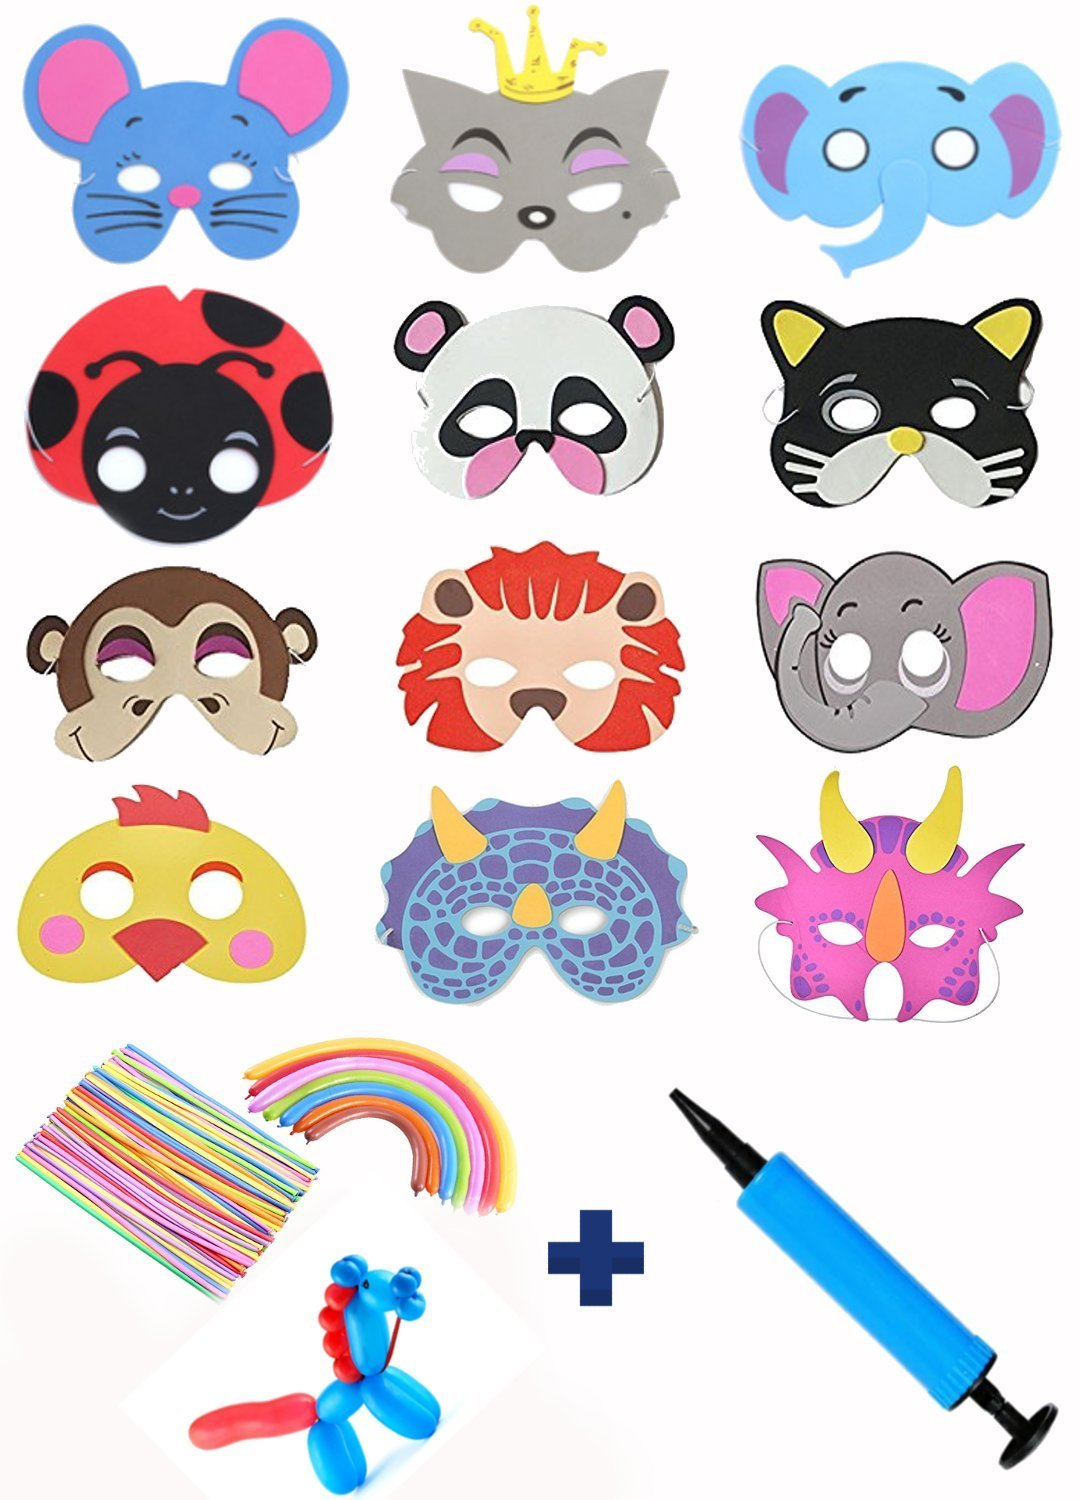 41Pcs Animal Masks Balloons Air Pump for Kids Christmas Birthday Jungle Safari Zoo Dress Up Costume Party Kit Supplies Favors